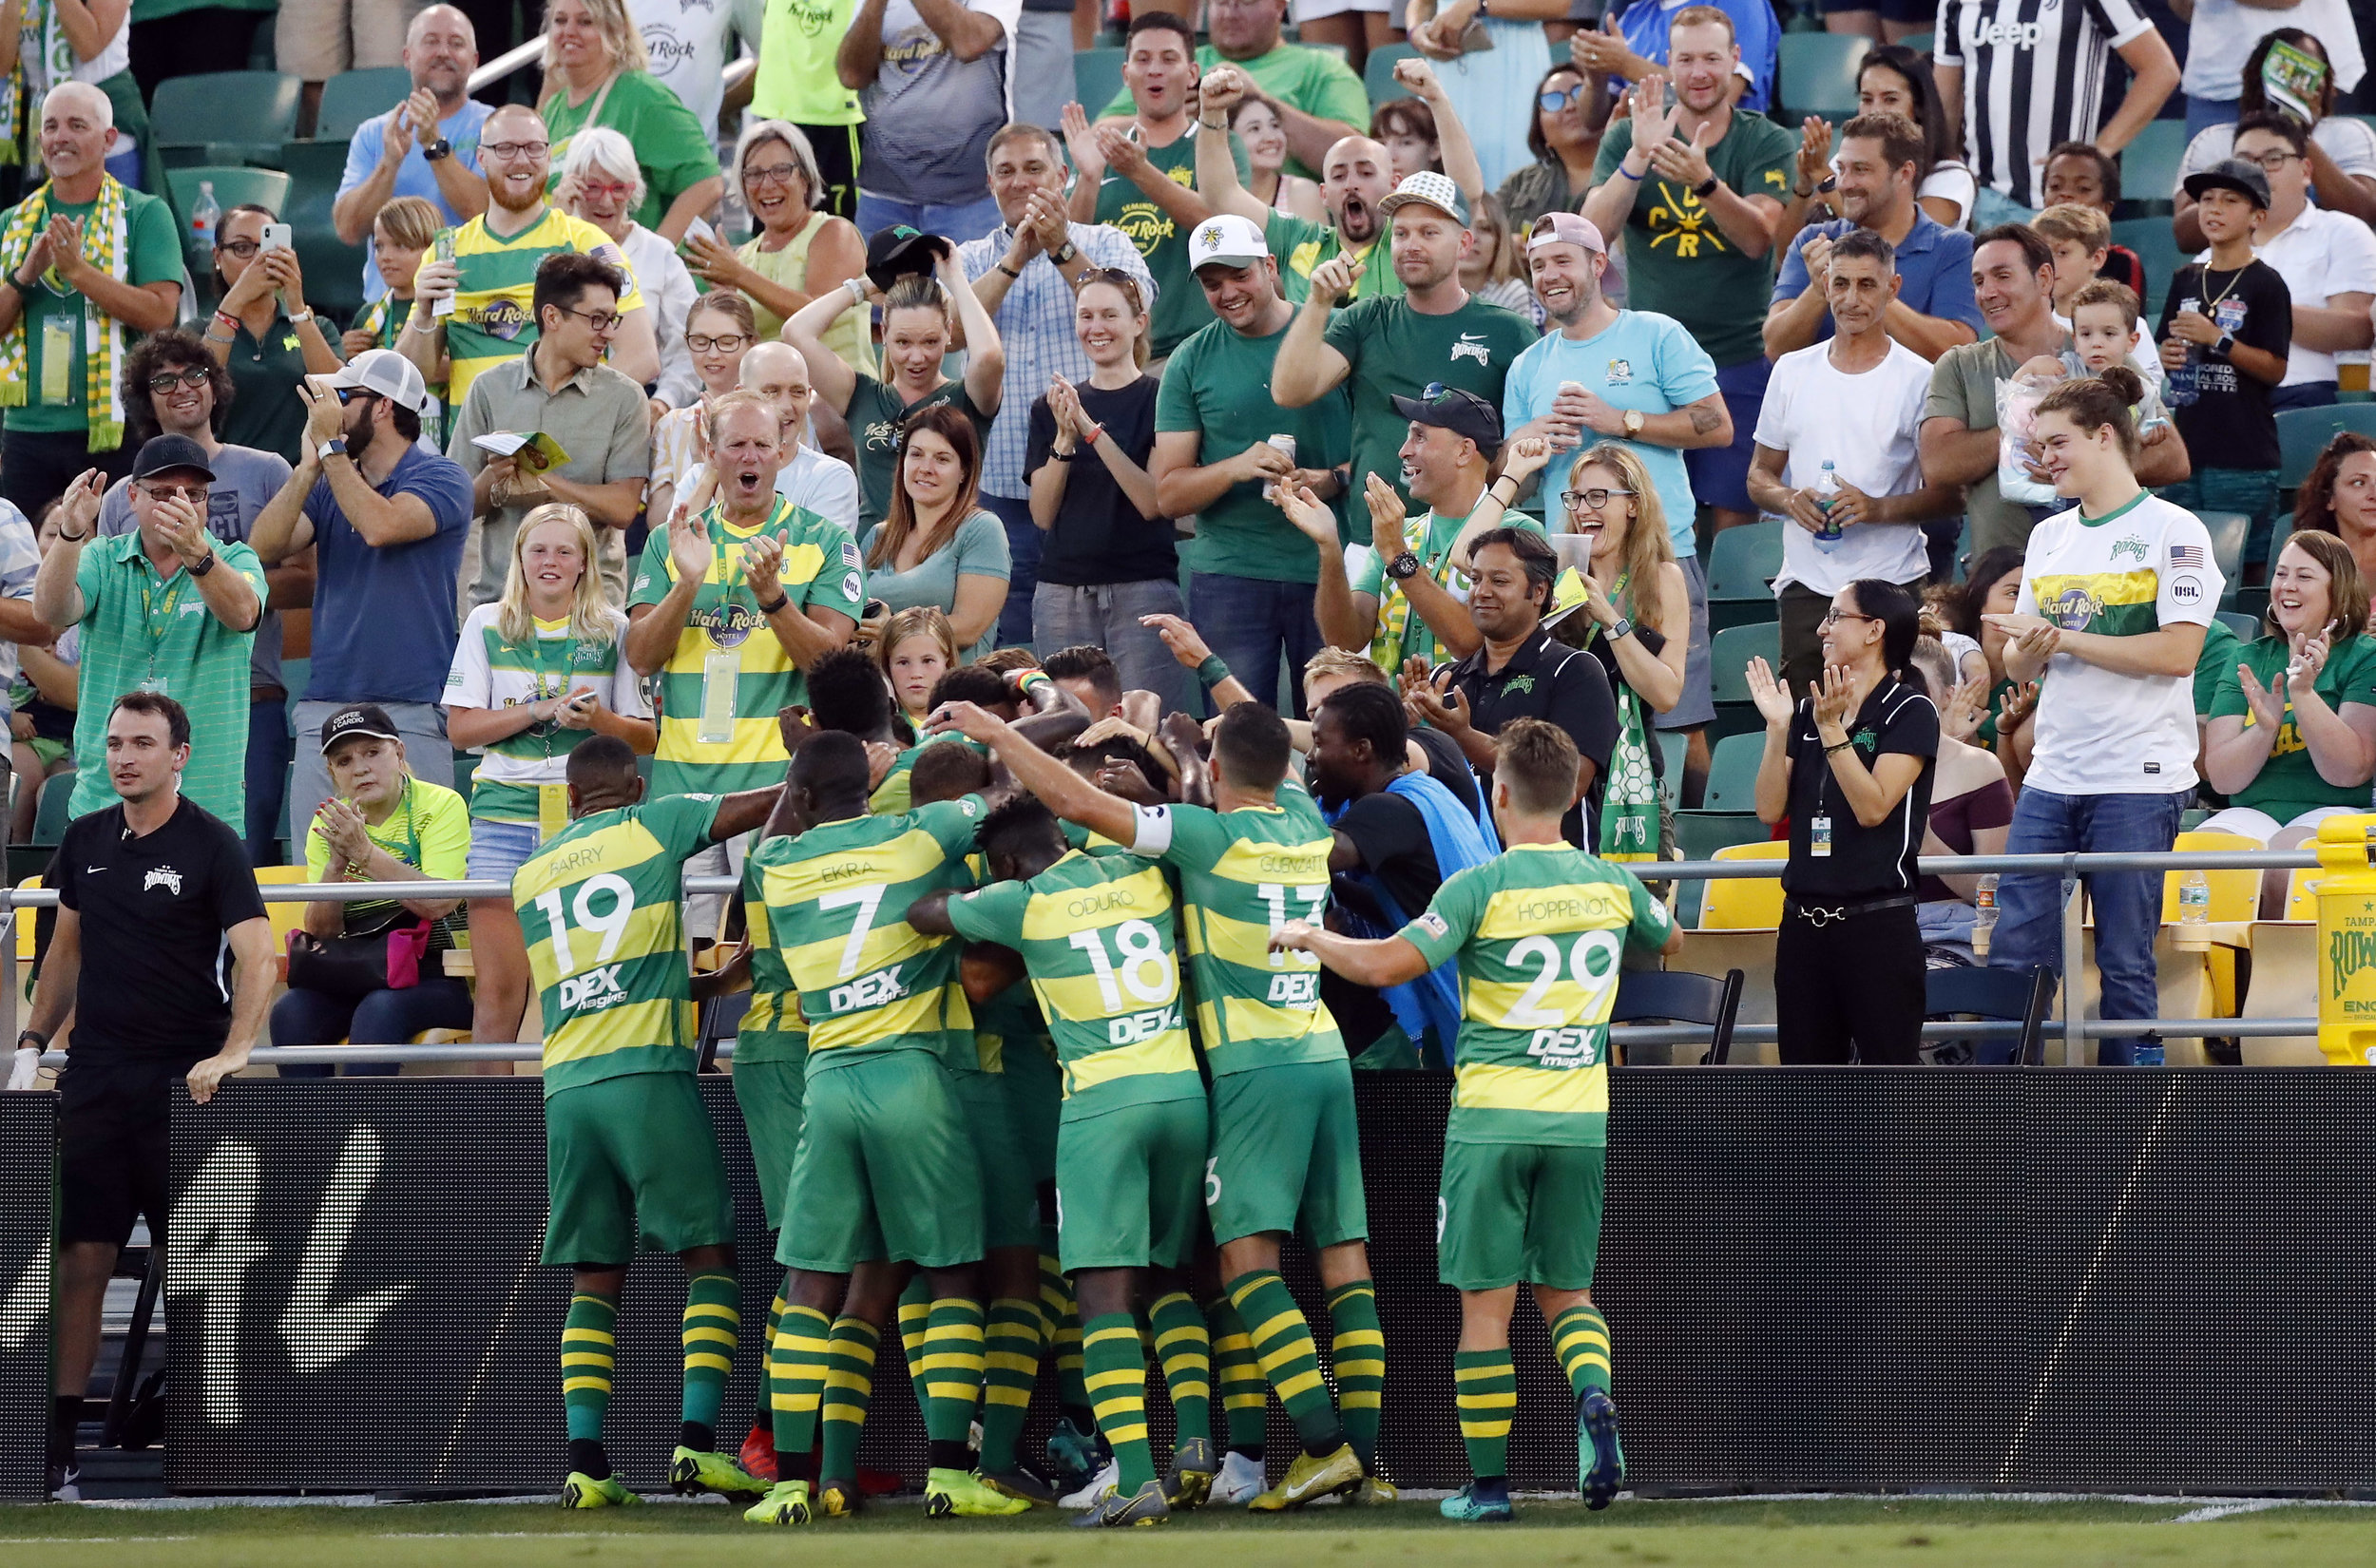 Tampa Bay Rowdies players celebrate with their fans. | Photo courtesy of Tampa Bay Rowdies/Matt May.